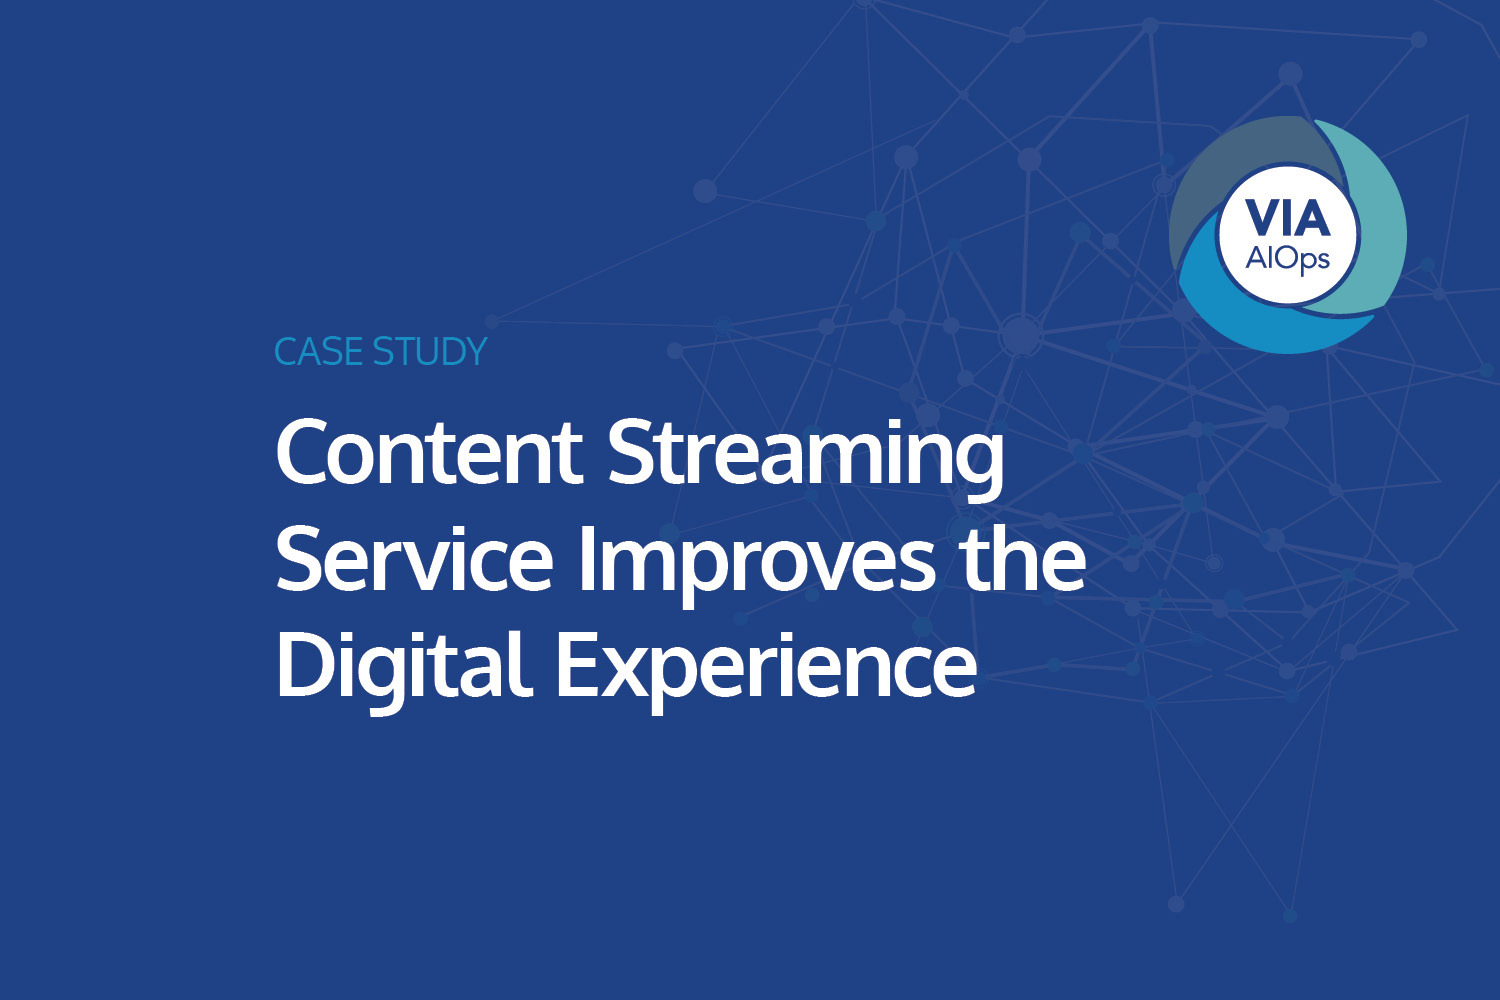 Download The Case Study: Content Streaming Service Improves the Digital Experience